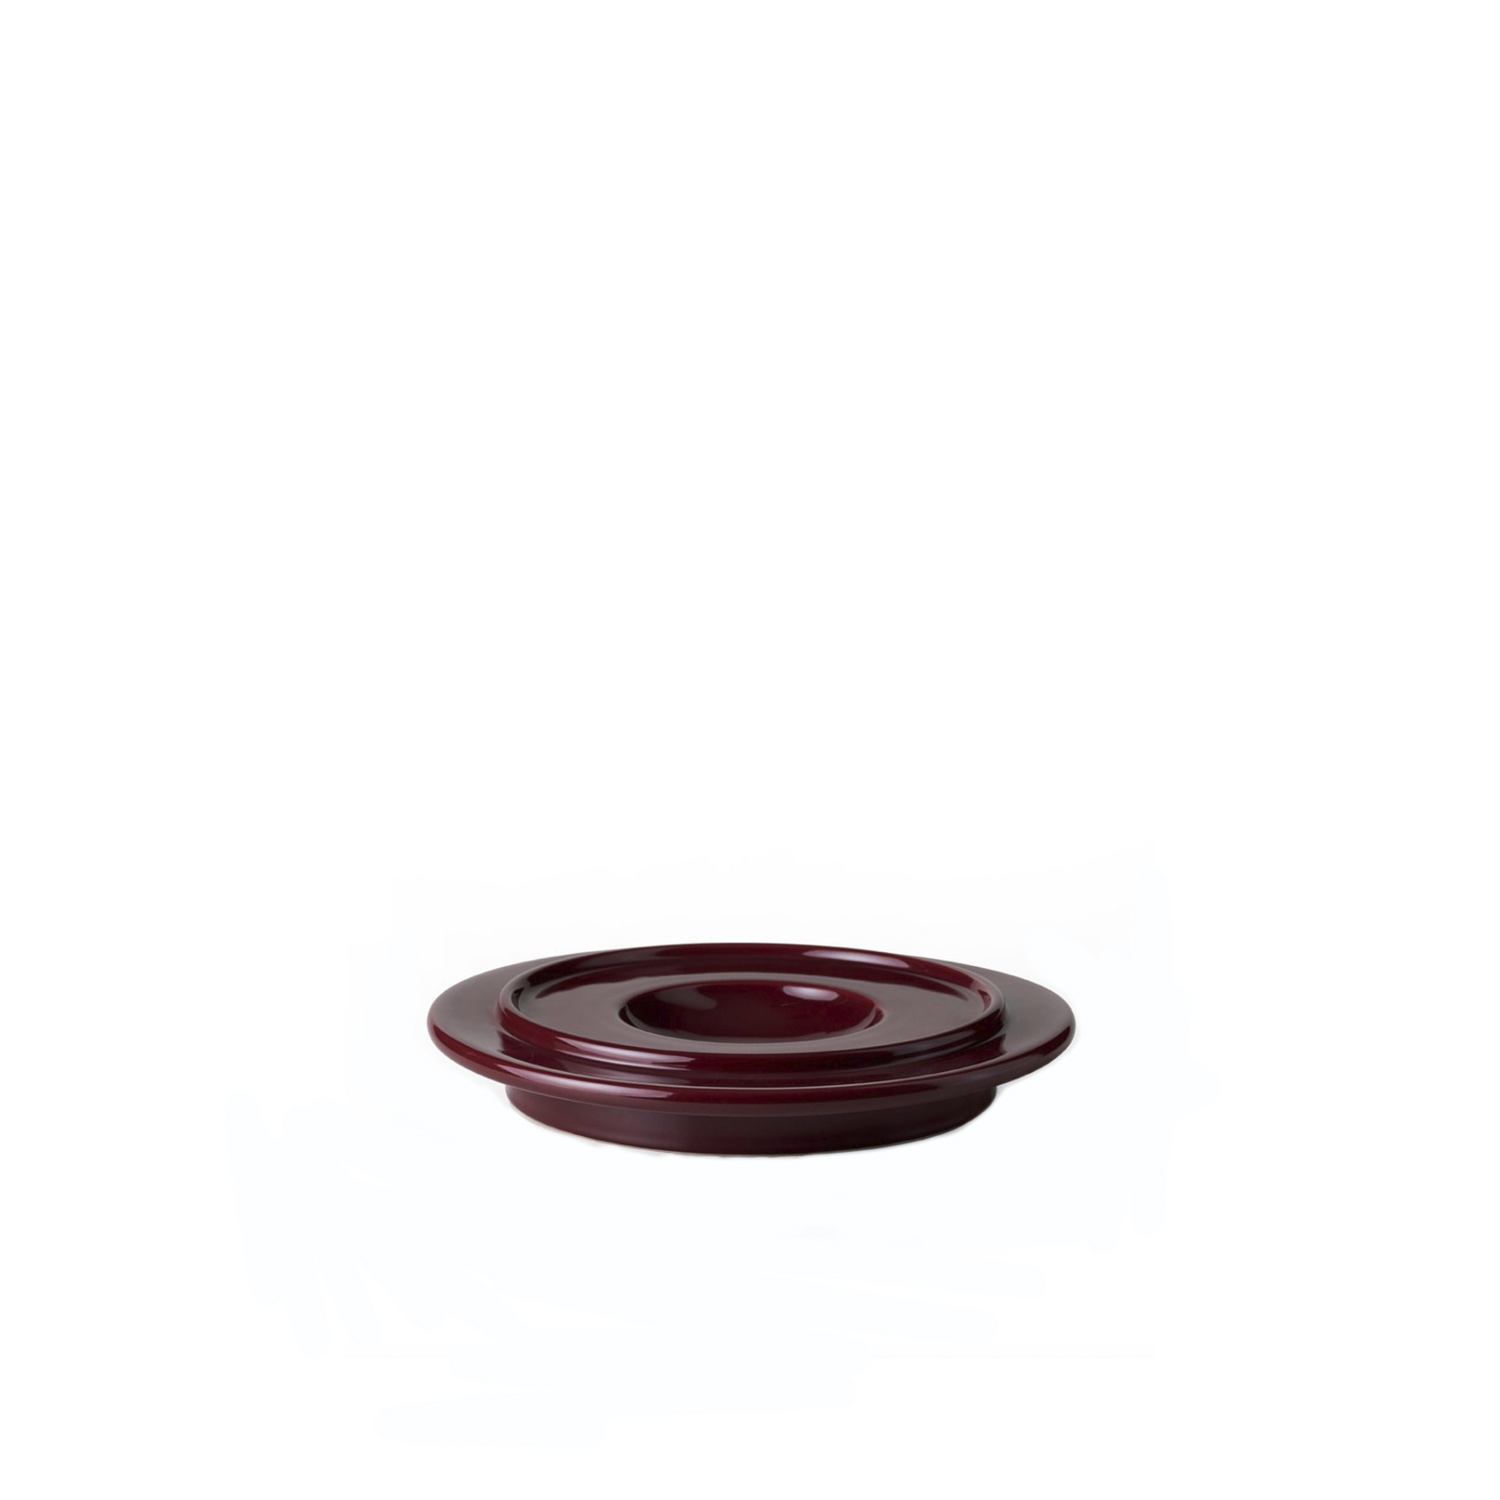 Red Glossy Ashtray - Ashtray. Hand-turned in white clay. Glossy red glaze. | Matter of Stuff